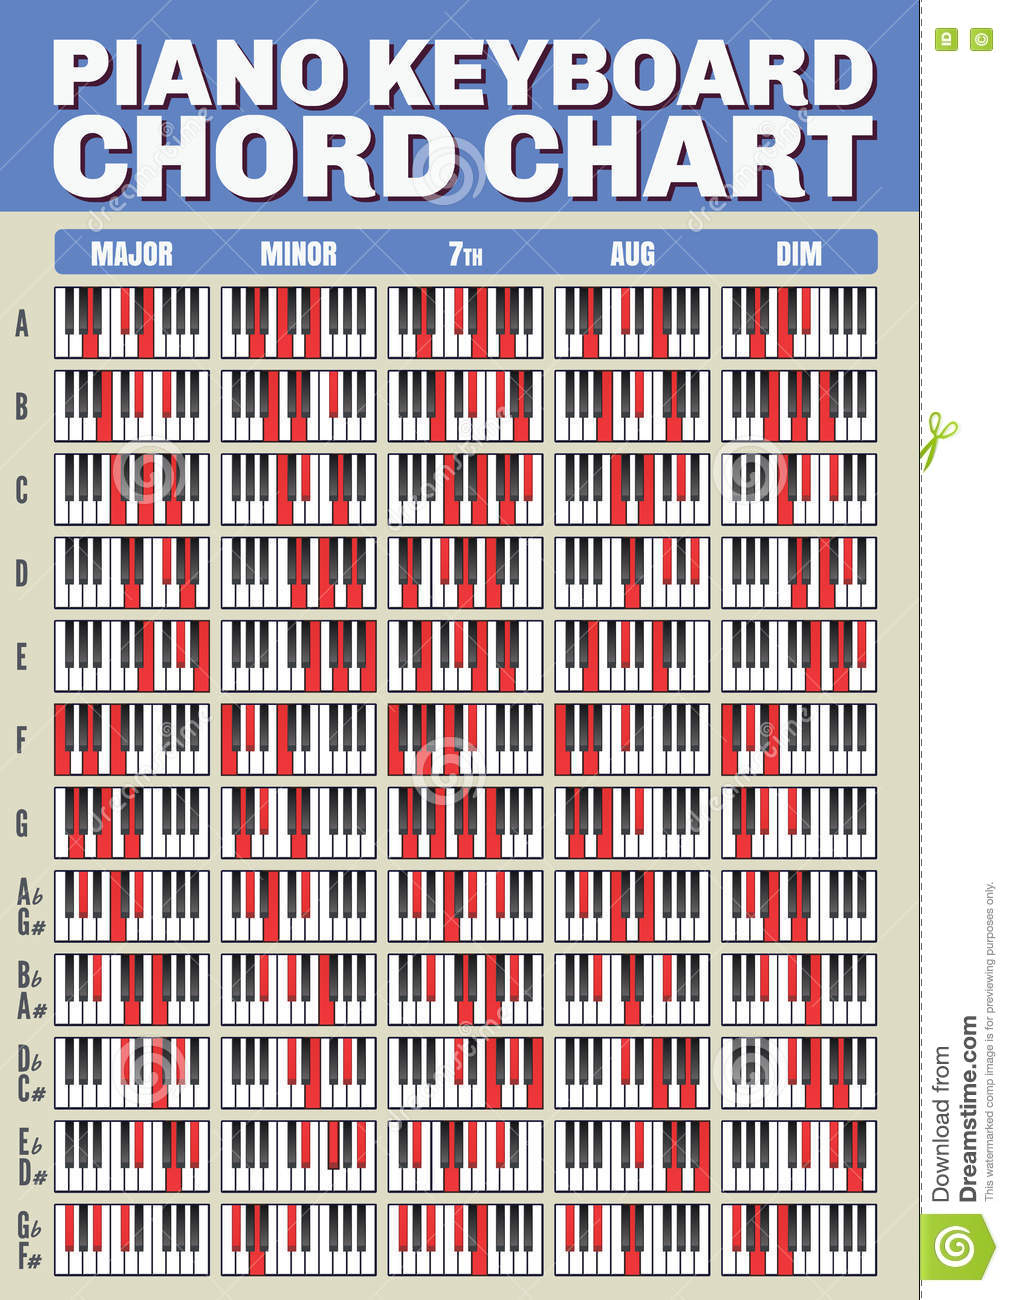 Keyboard Chord Chart stock illustration  Illustration of